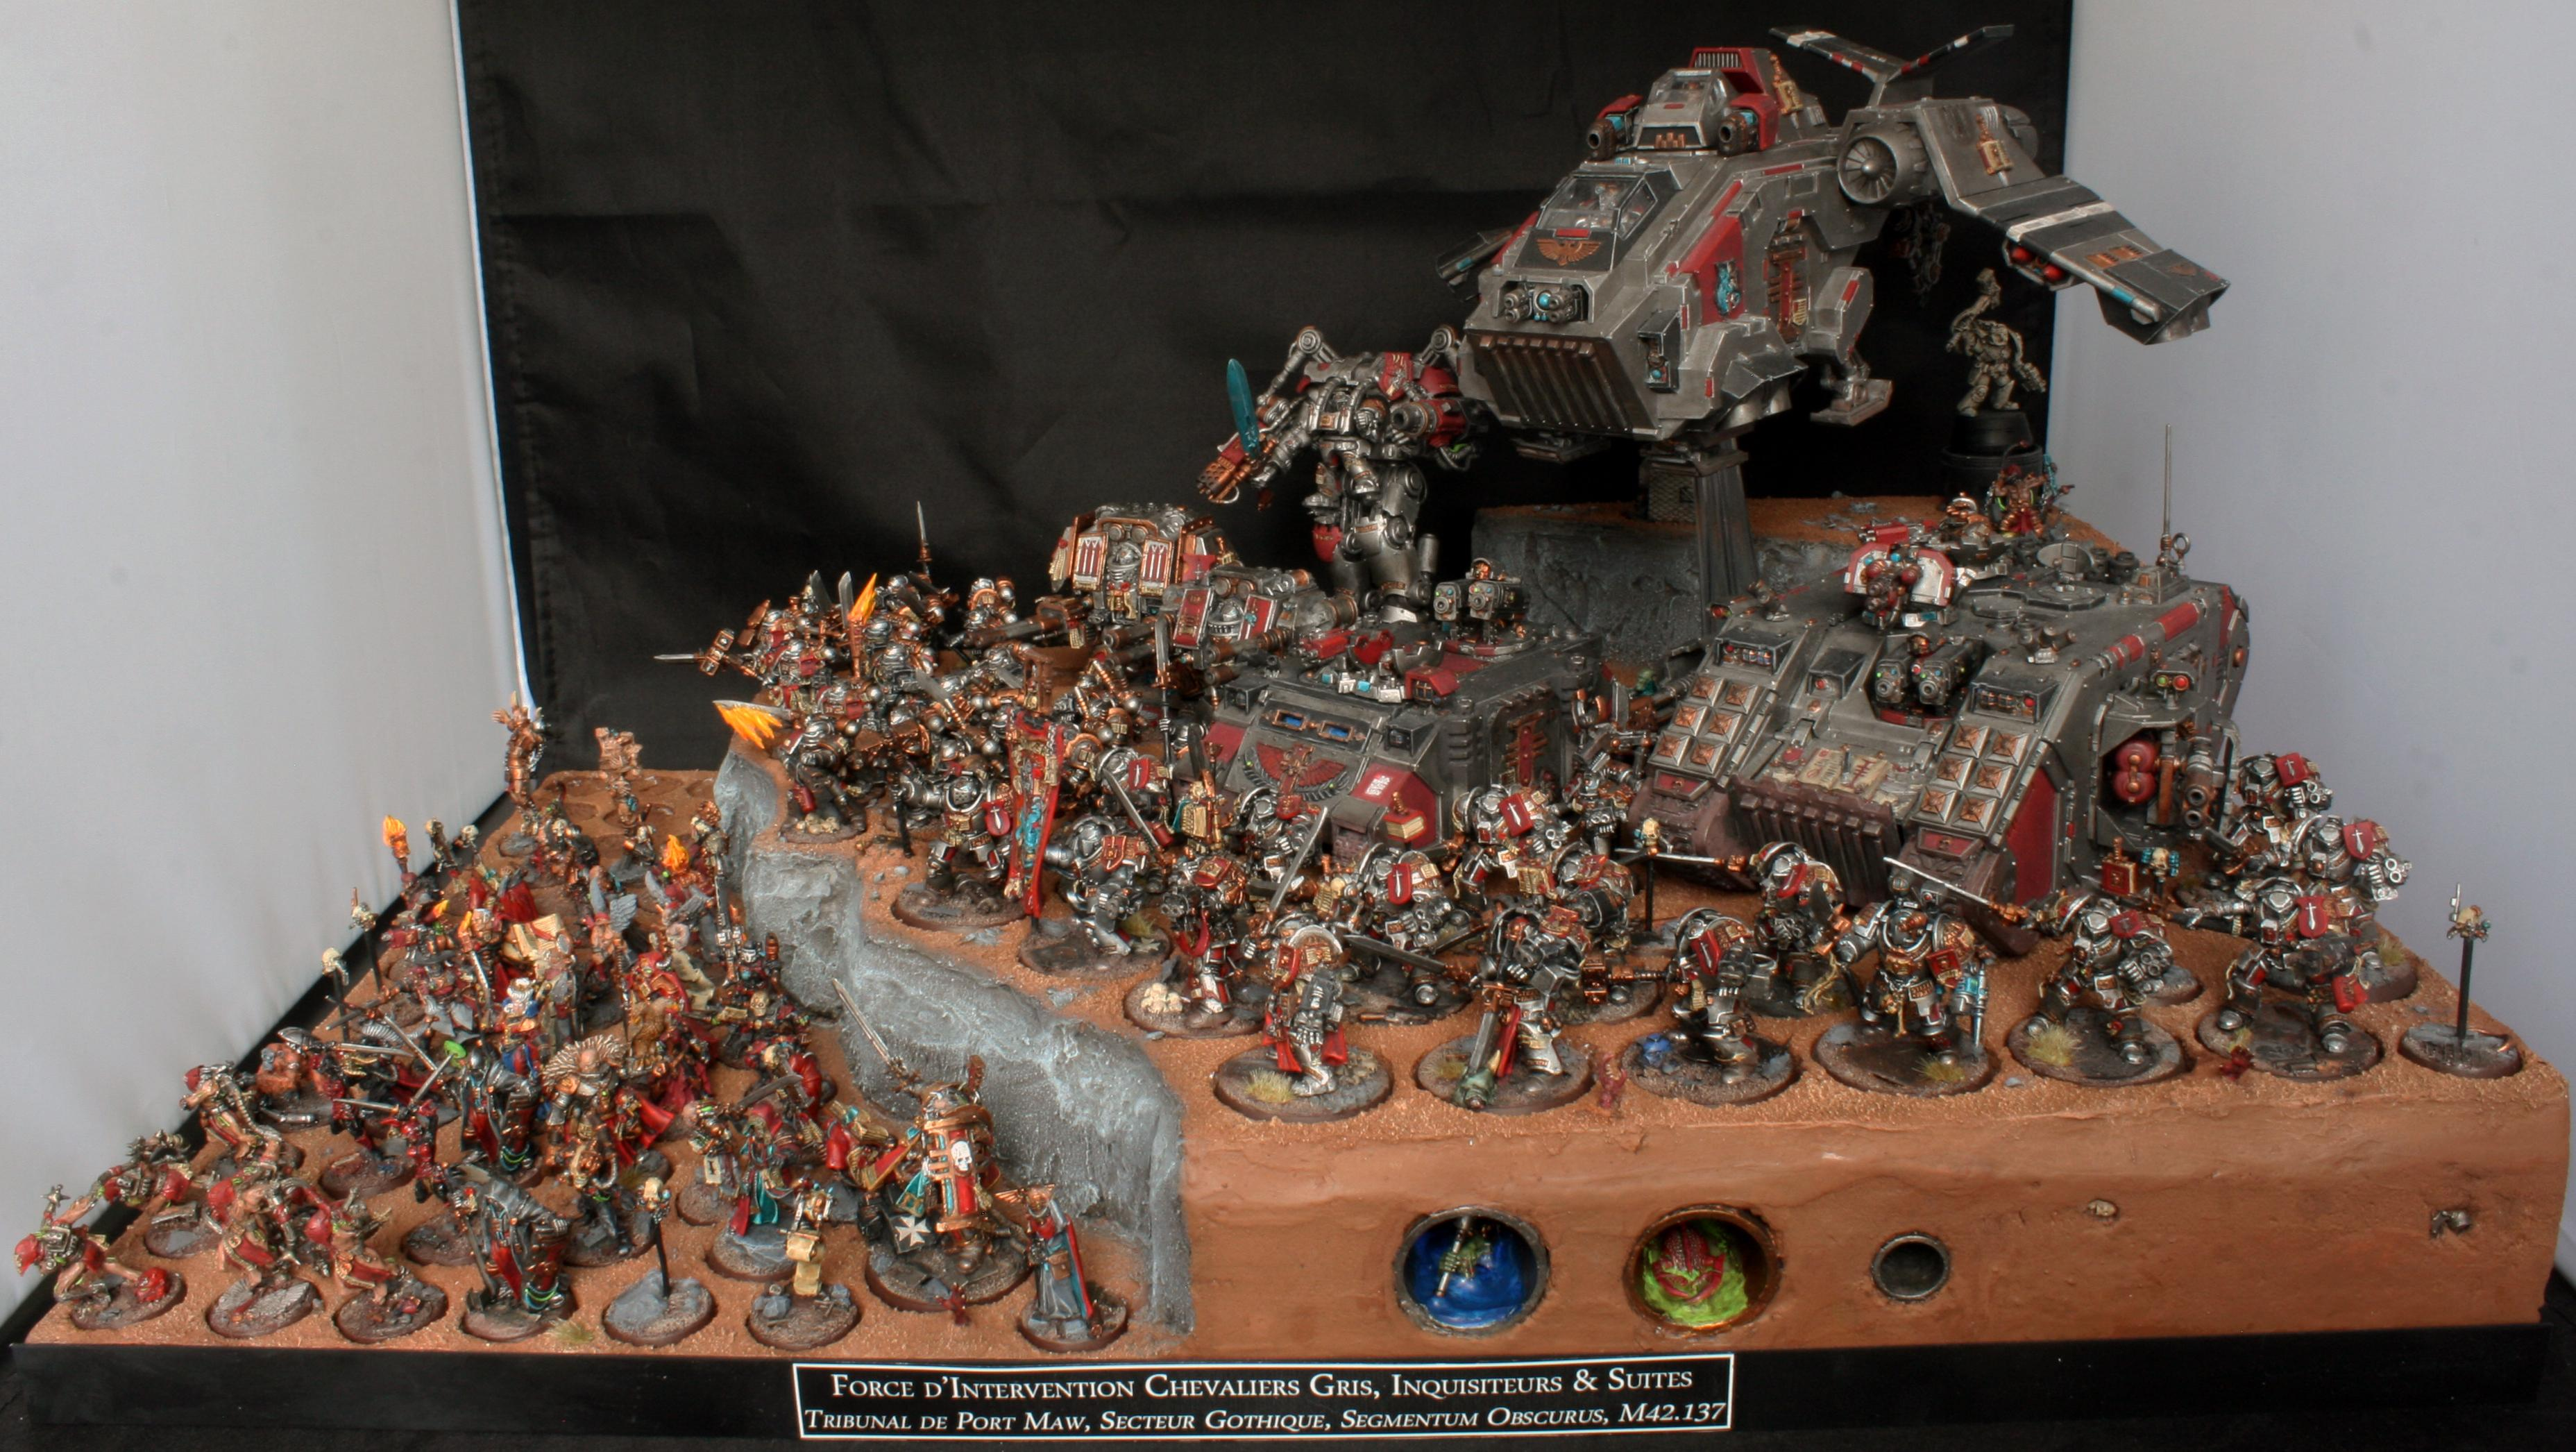 Arkaal, Display, Dreadknigh, Dreadnought, Forge, Grey, Hector, Henchmen, Inquisitor, Knights, Land, Librarian, Lok, Raider, Raven, Rex, Rhino, Solomon, Stern, Storm, Tray, World